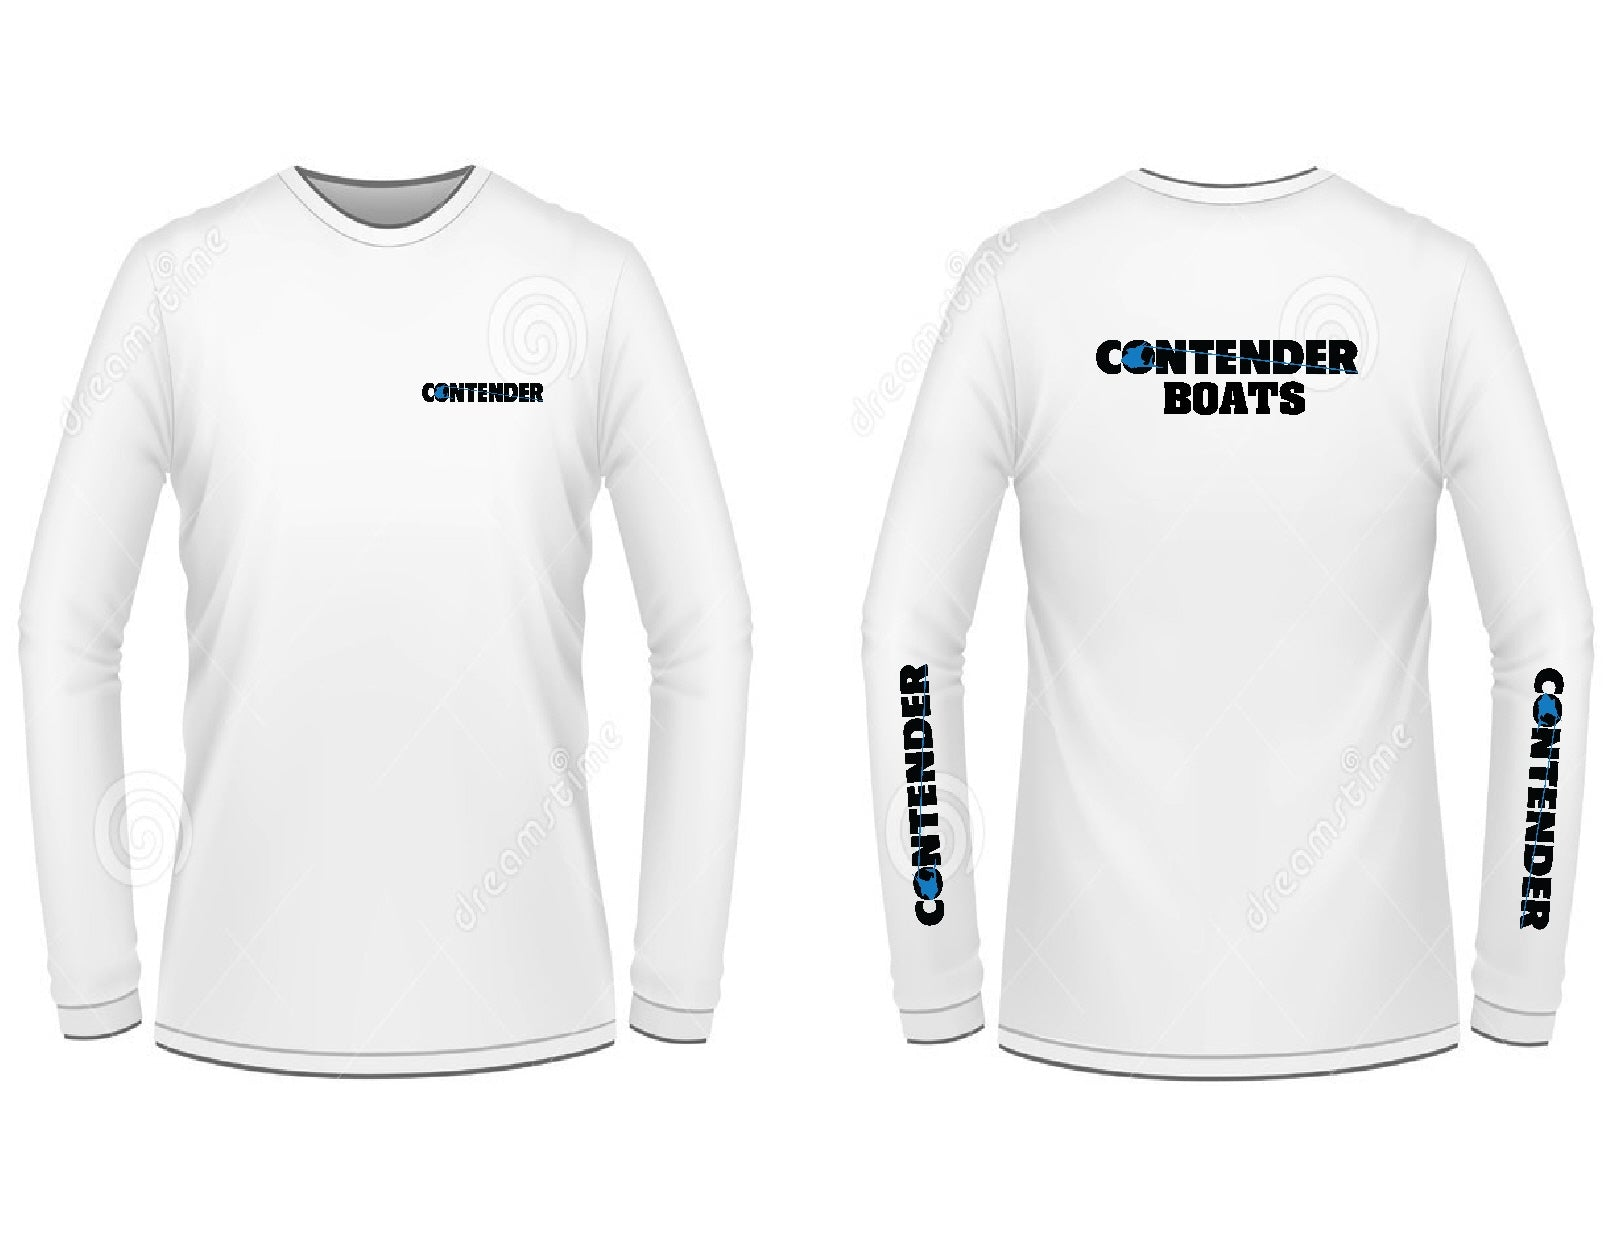 Contender Boats Long Sleeve T-Shirt